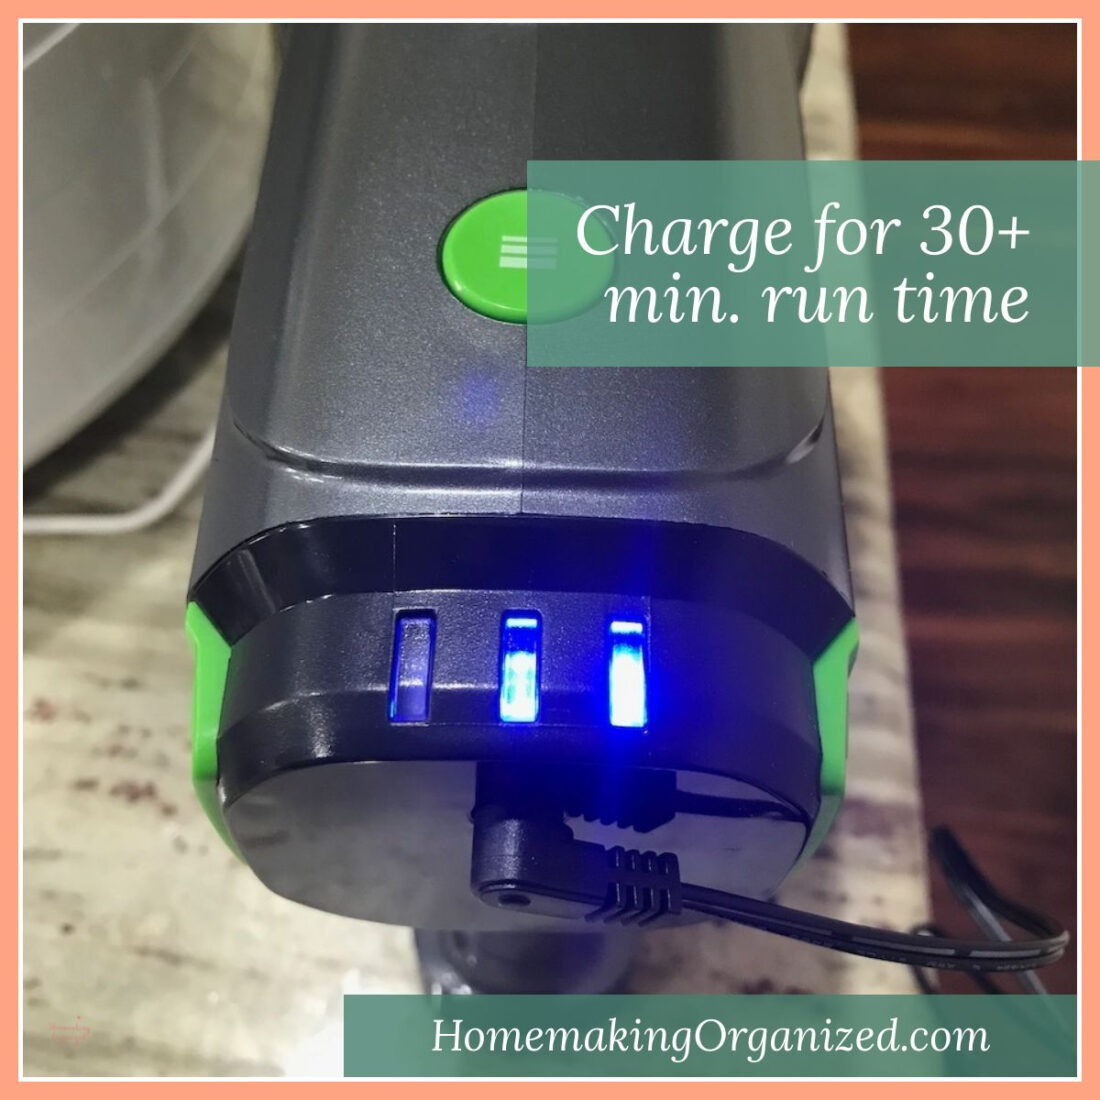 TOPPIN Powerful Cordless Stick Vacuum Charging Lights